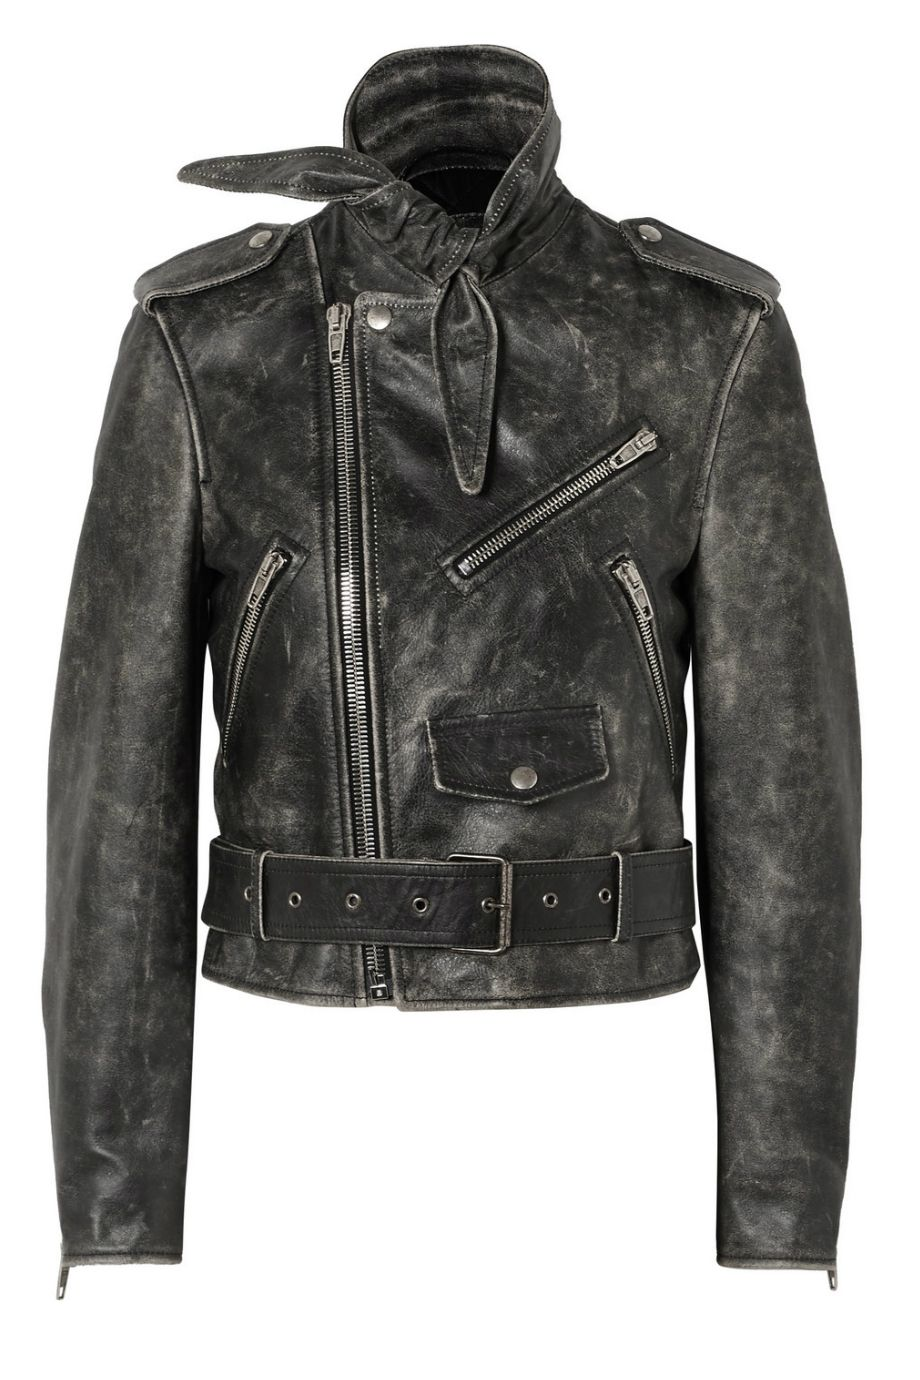 NET-A-PORTER x BALENCIAGA Scarf distressed leather biker jacket